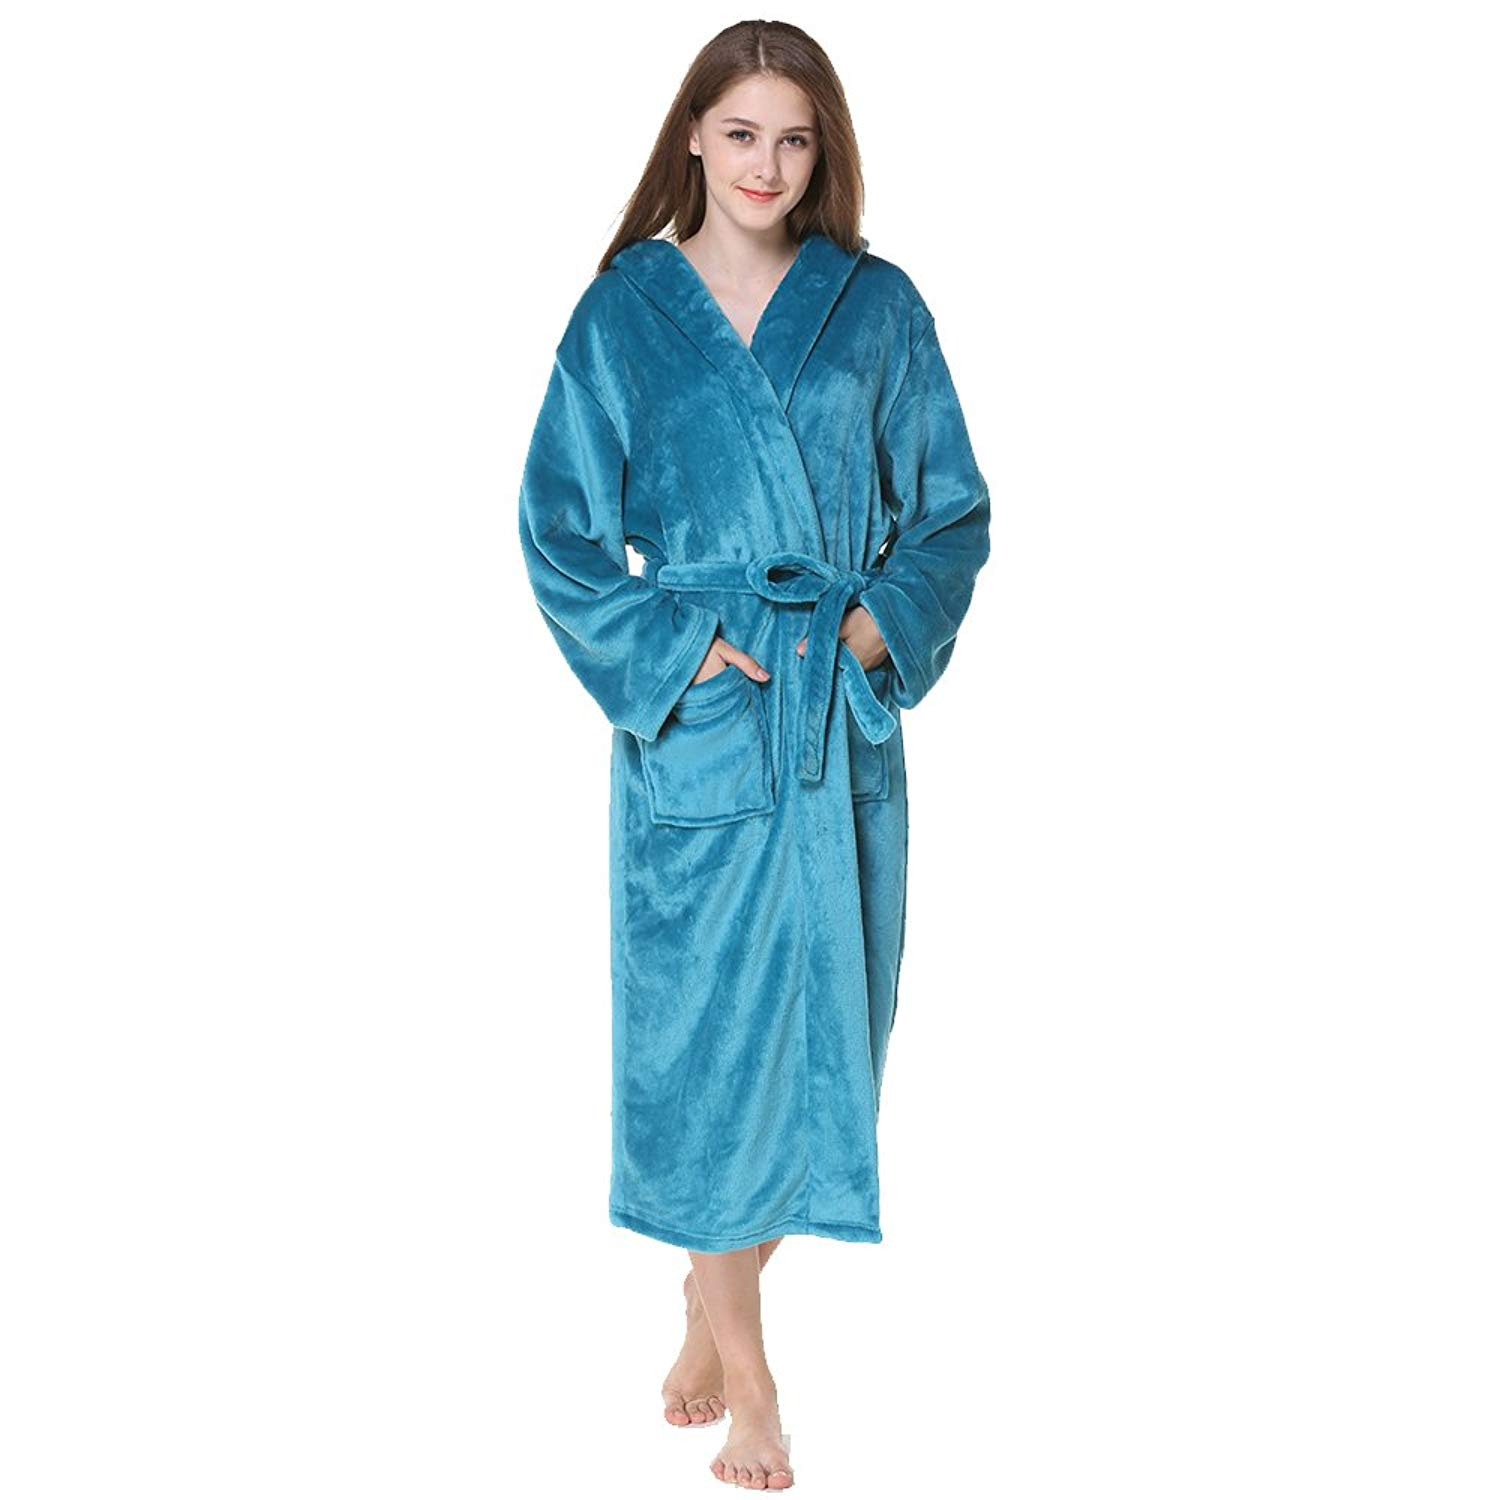 f78ecaa7c7 Get Quotations · BabYoung Women s Flannel Bathrobes Casual Thicken with  Hooded Long Sleeves Plus Size Robes Women Nightgown Winter